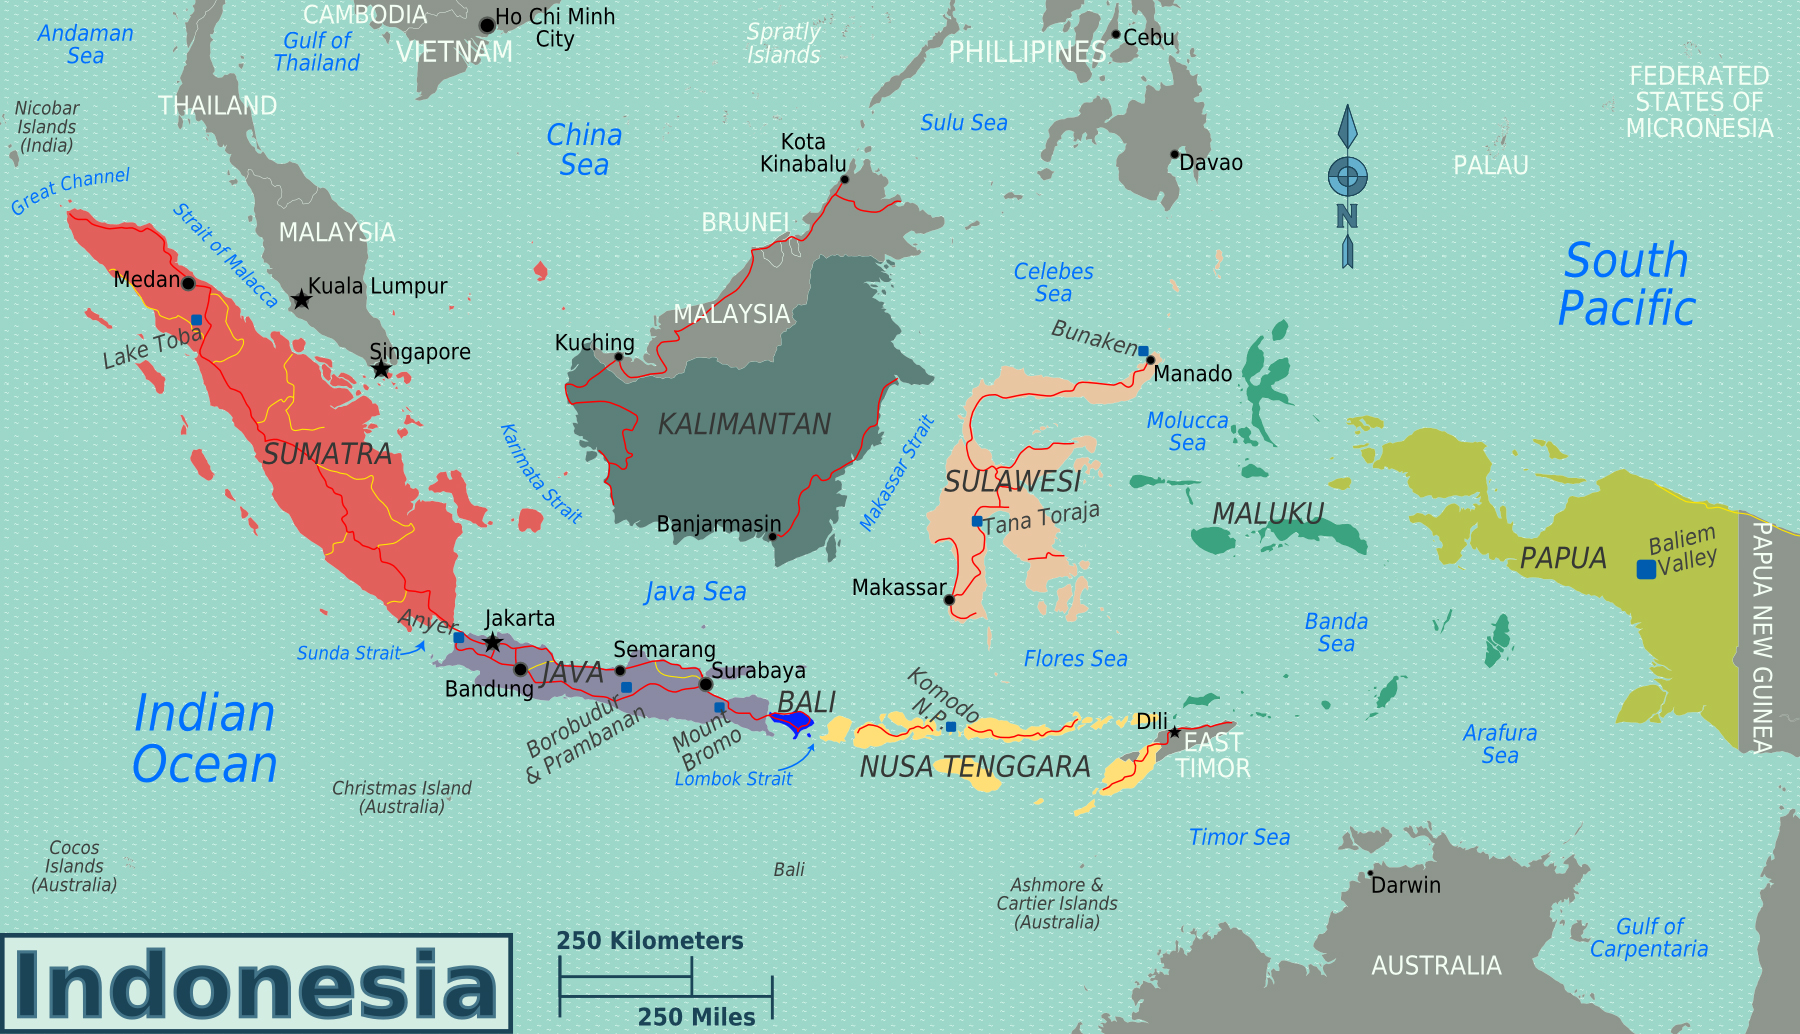 large-regions-map-of-indonesia.jpg